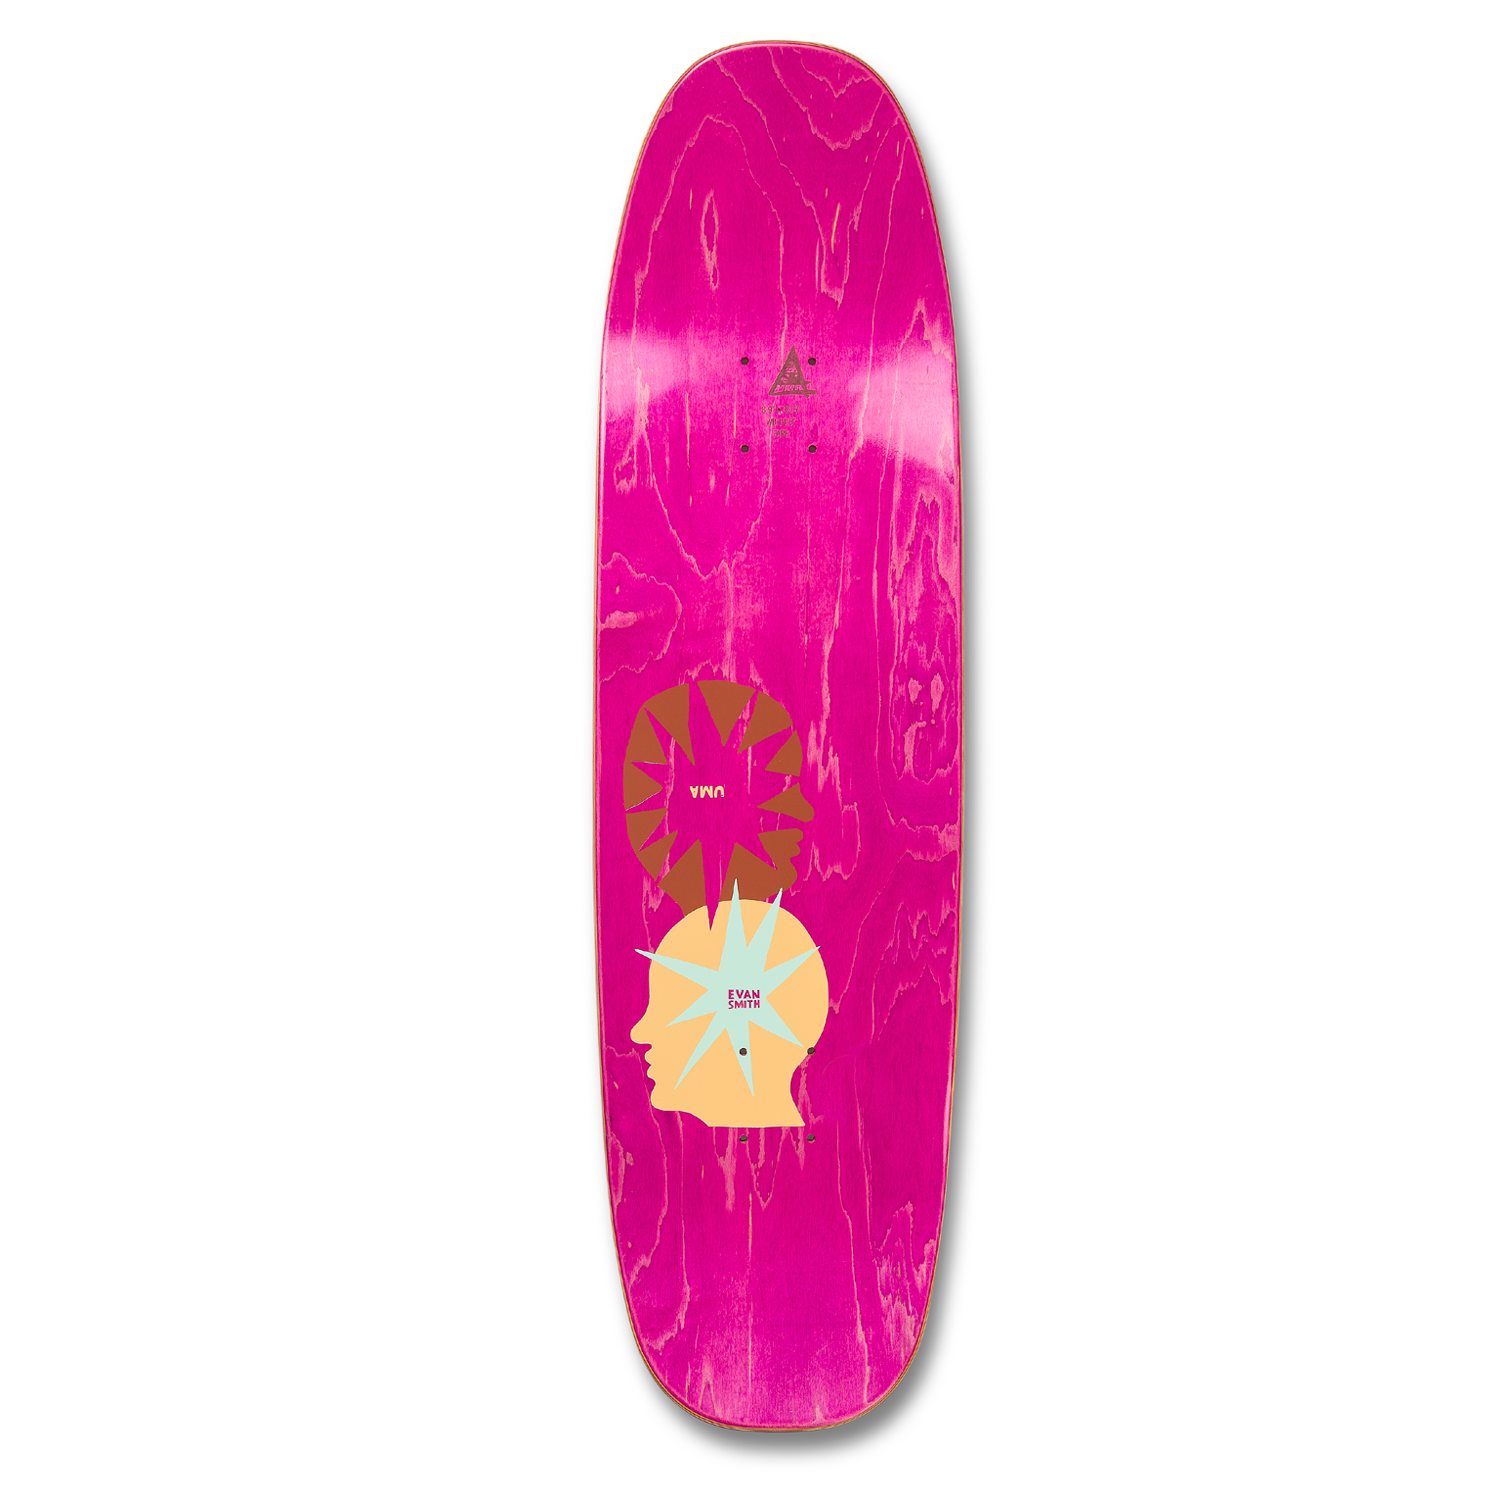 "Uma Star Head Buddies Deck 8.9"" (Shaped)"